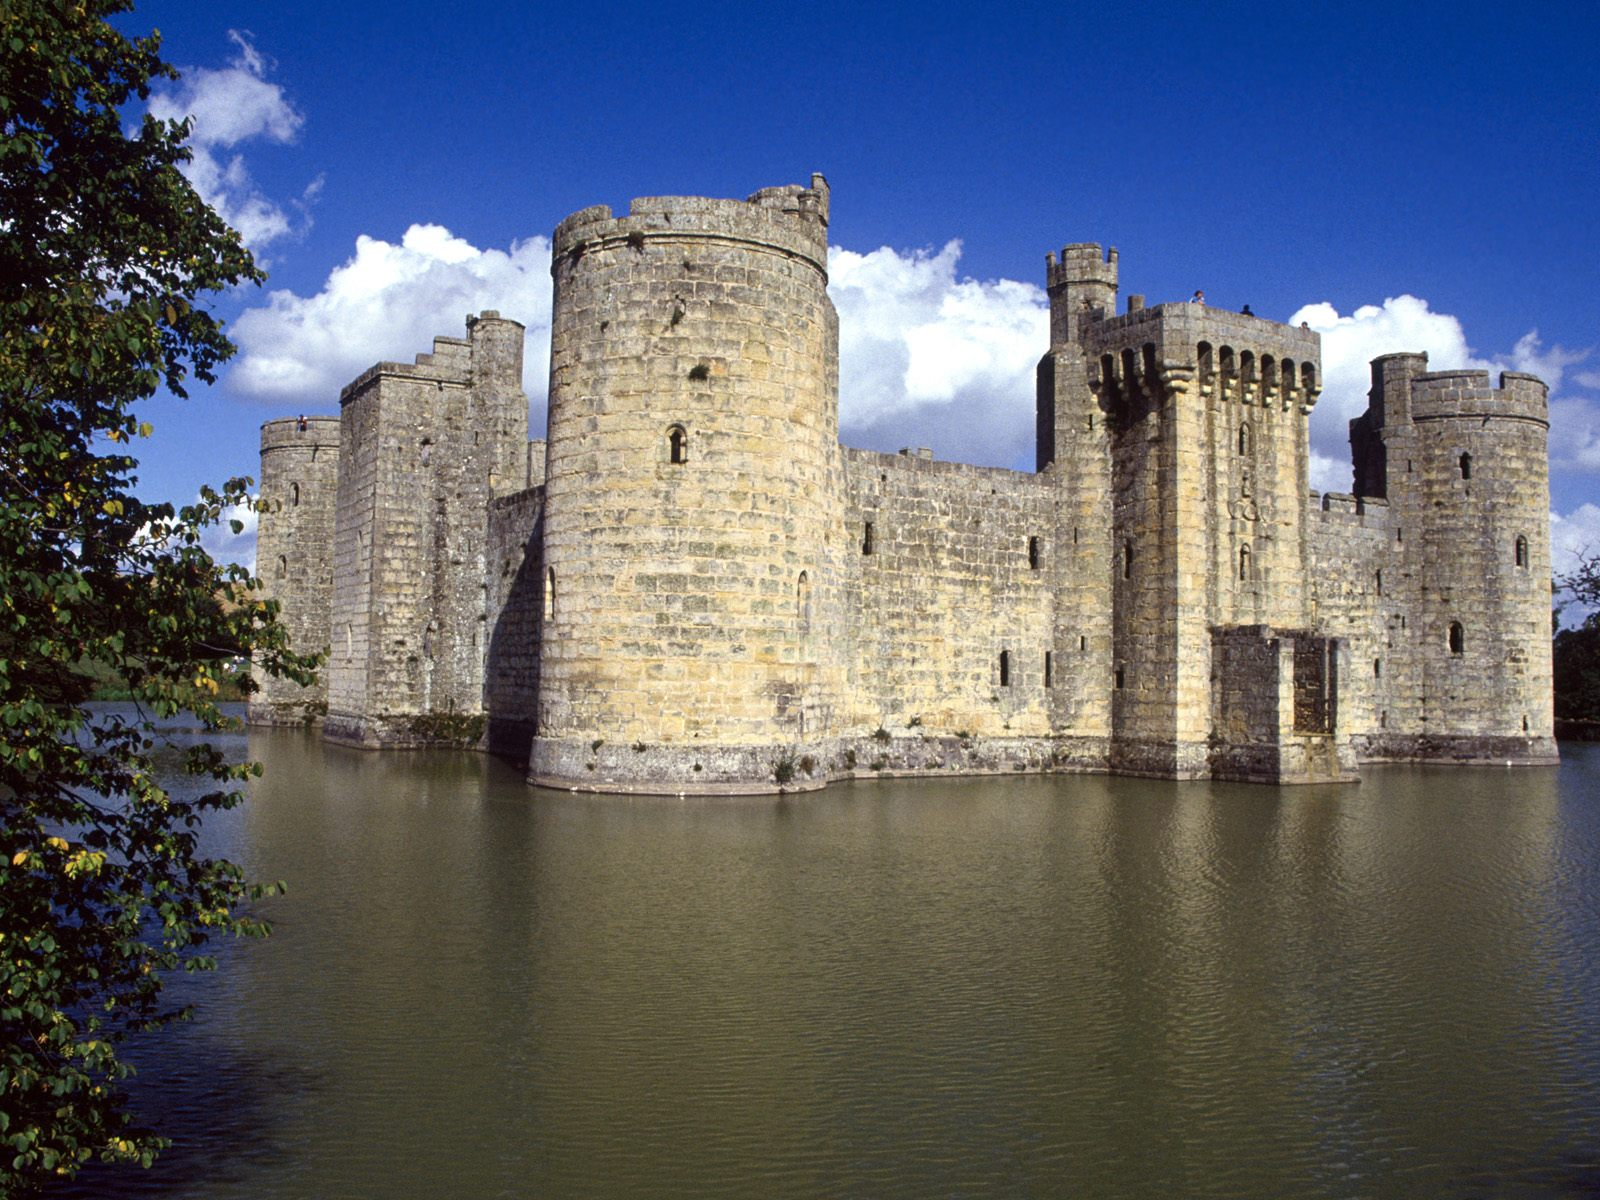 bodiam castle and moat east sussex england picture bodiam